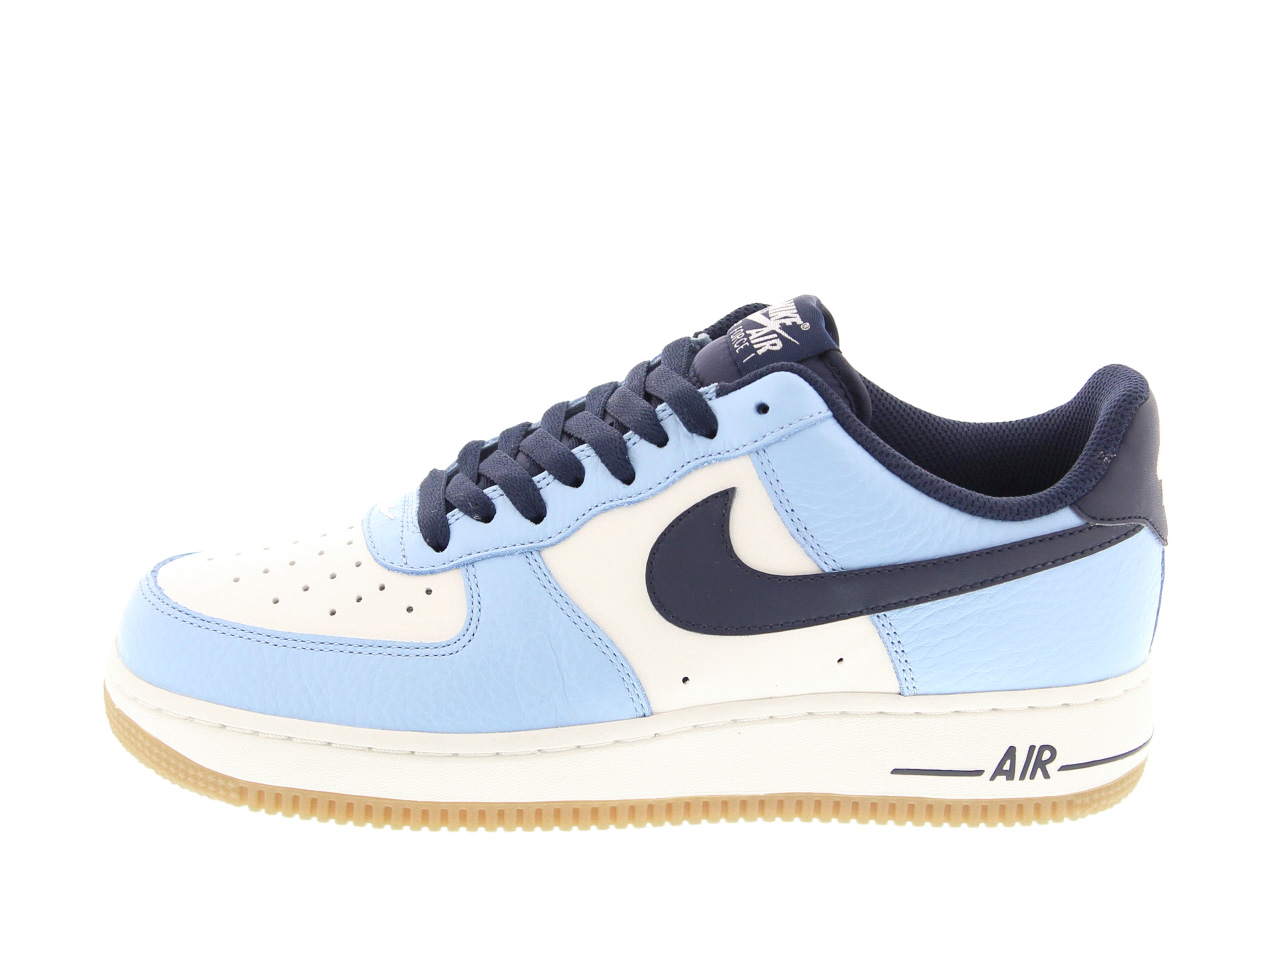 NIKE AIR FORCE 1 (820266-400) BLUECAP/OBSDN-SL-GM LGHT BRWN